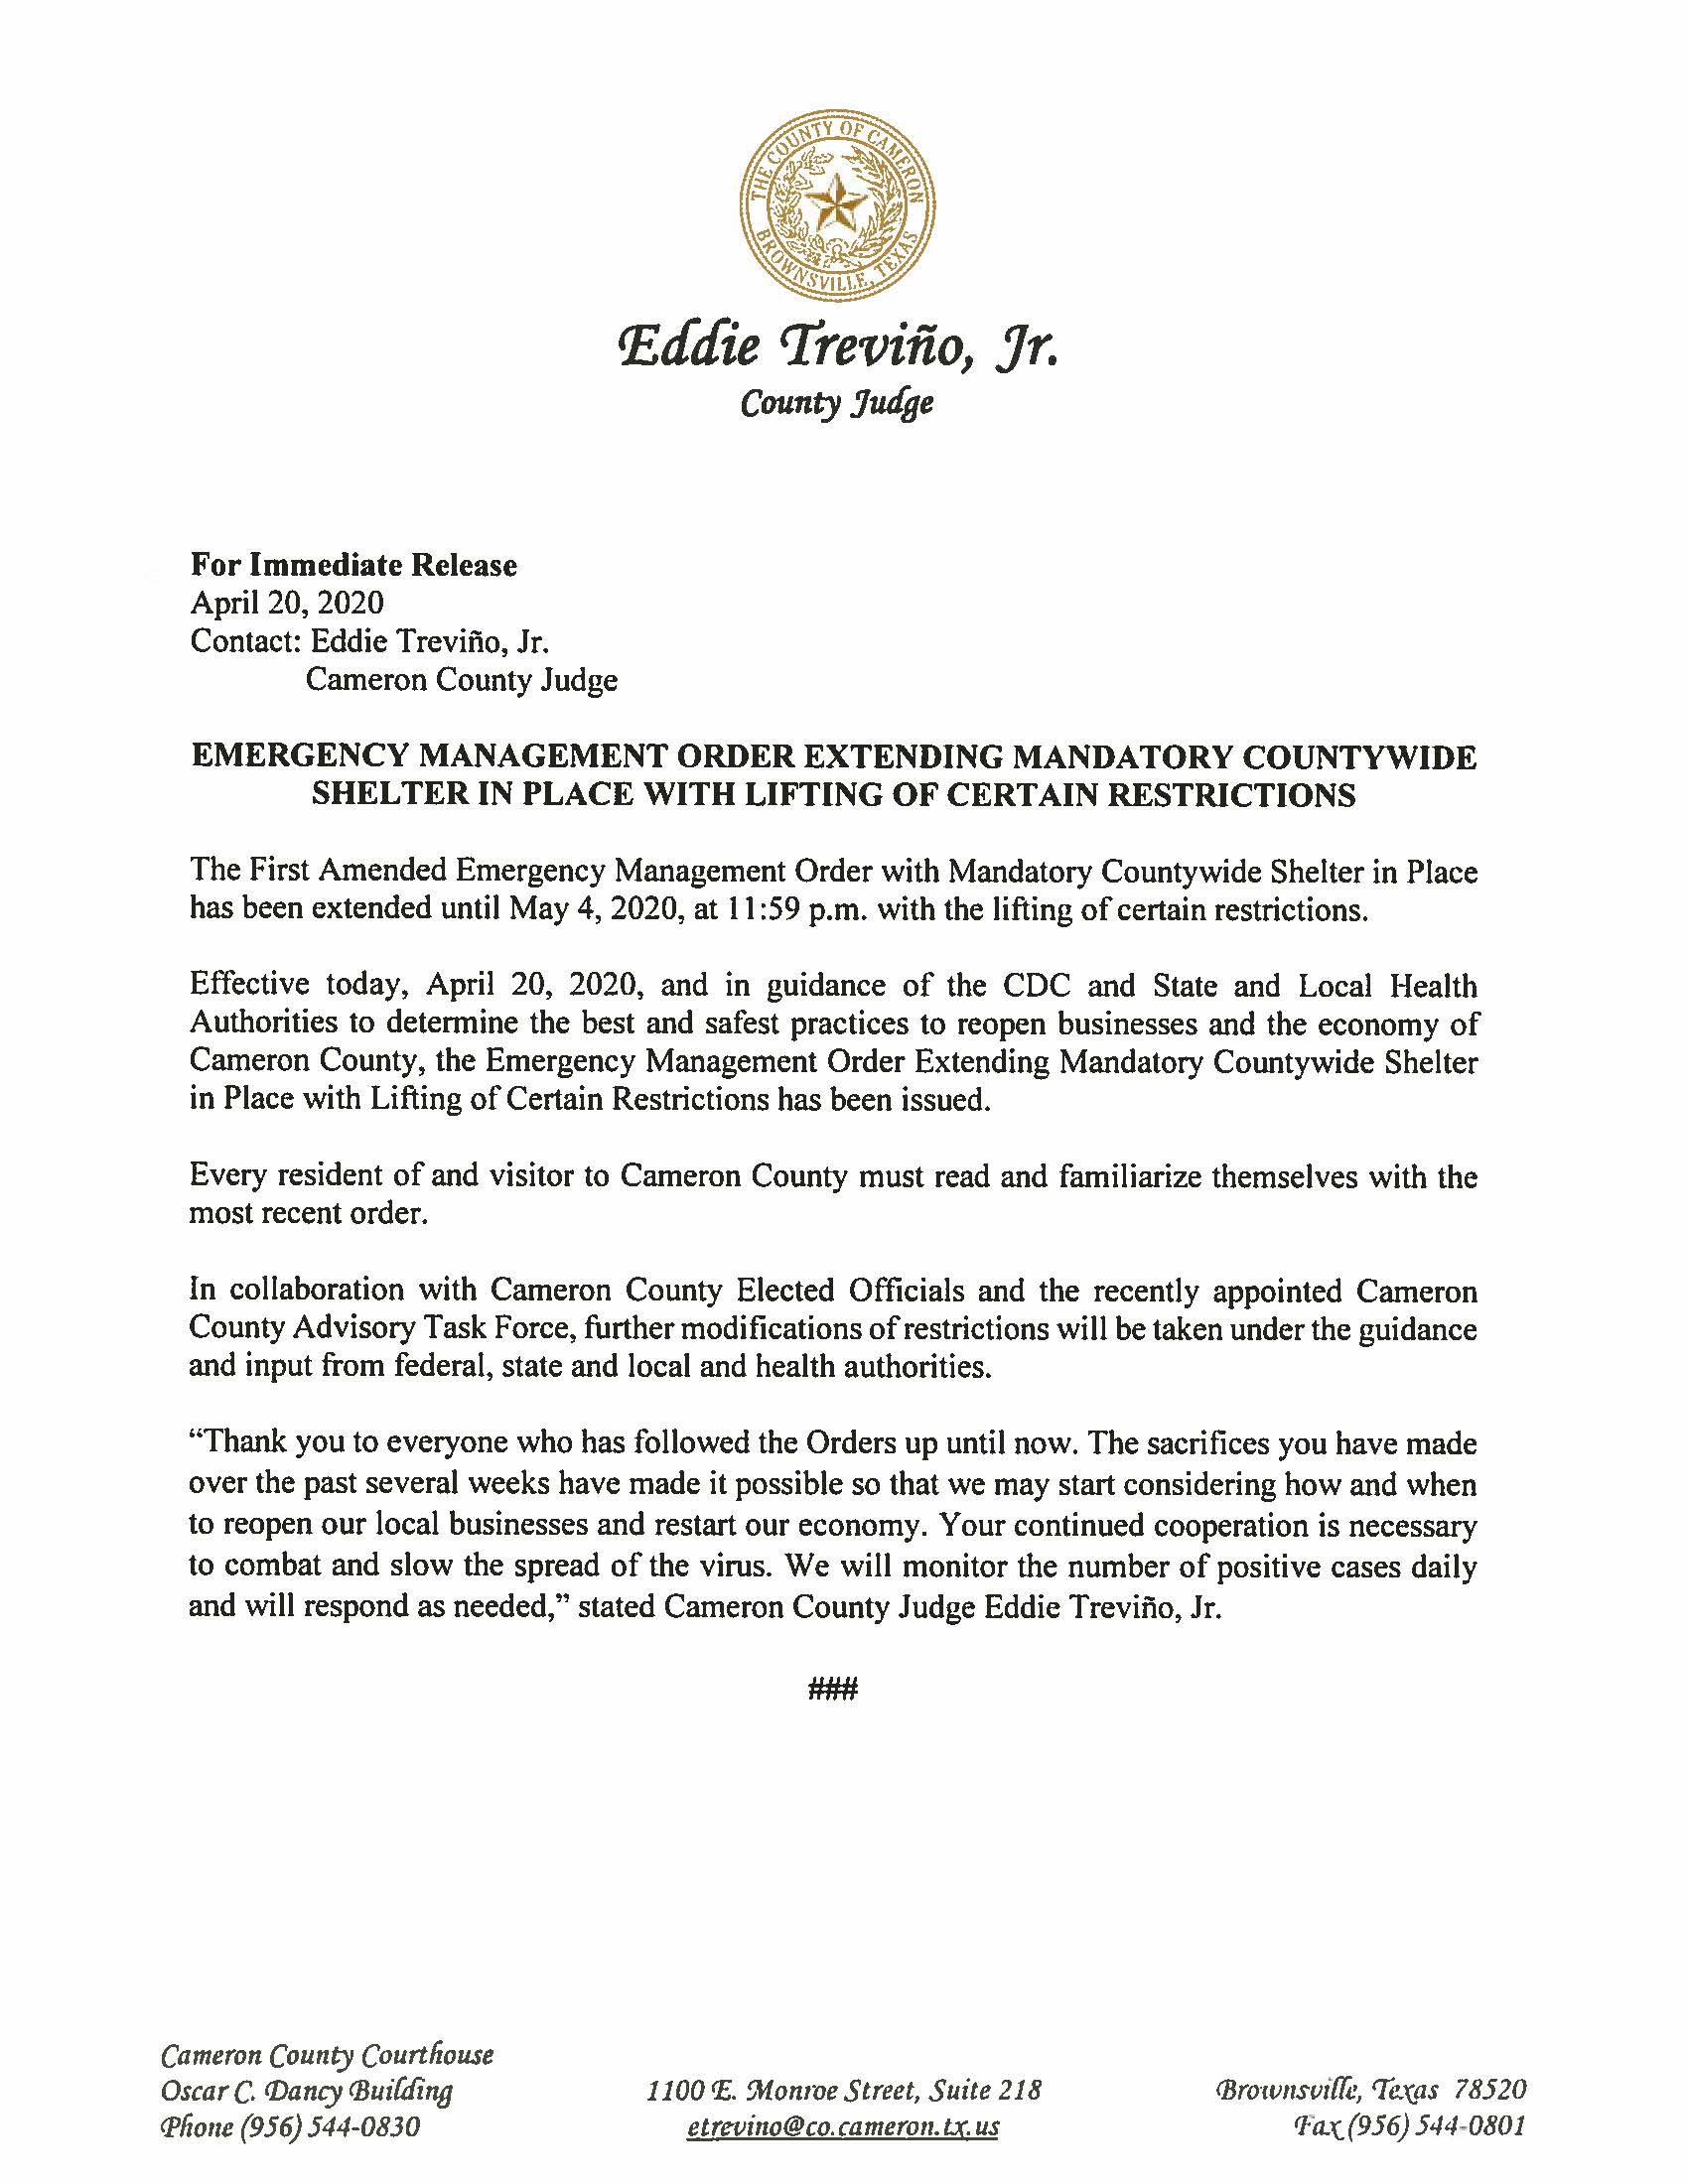 04.20.2020 For Immediate Release Emergency Management Order Extending Mandatory Countywide Shelter In Place With Lifting Of Certain Restrictions